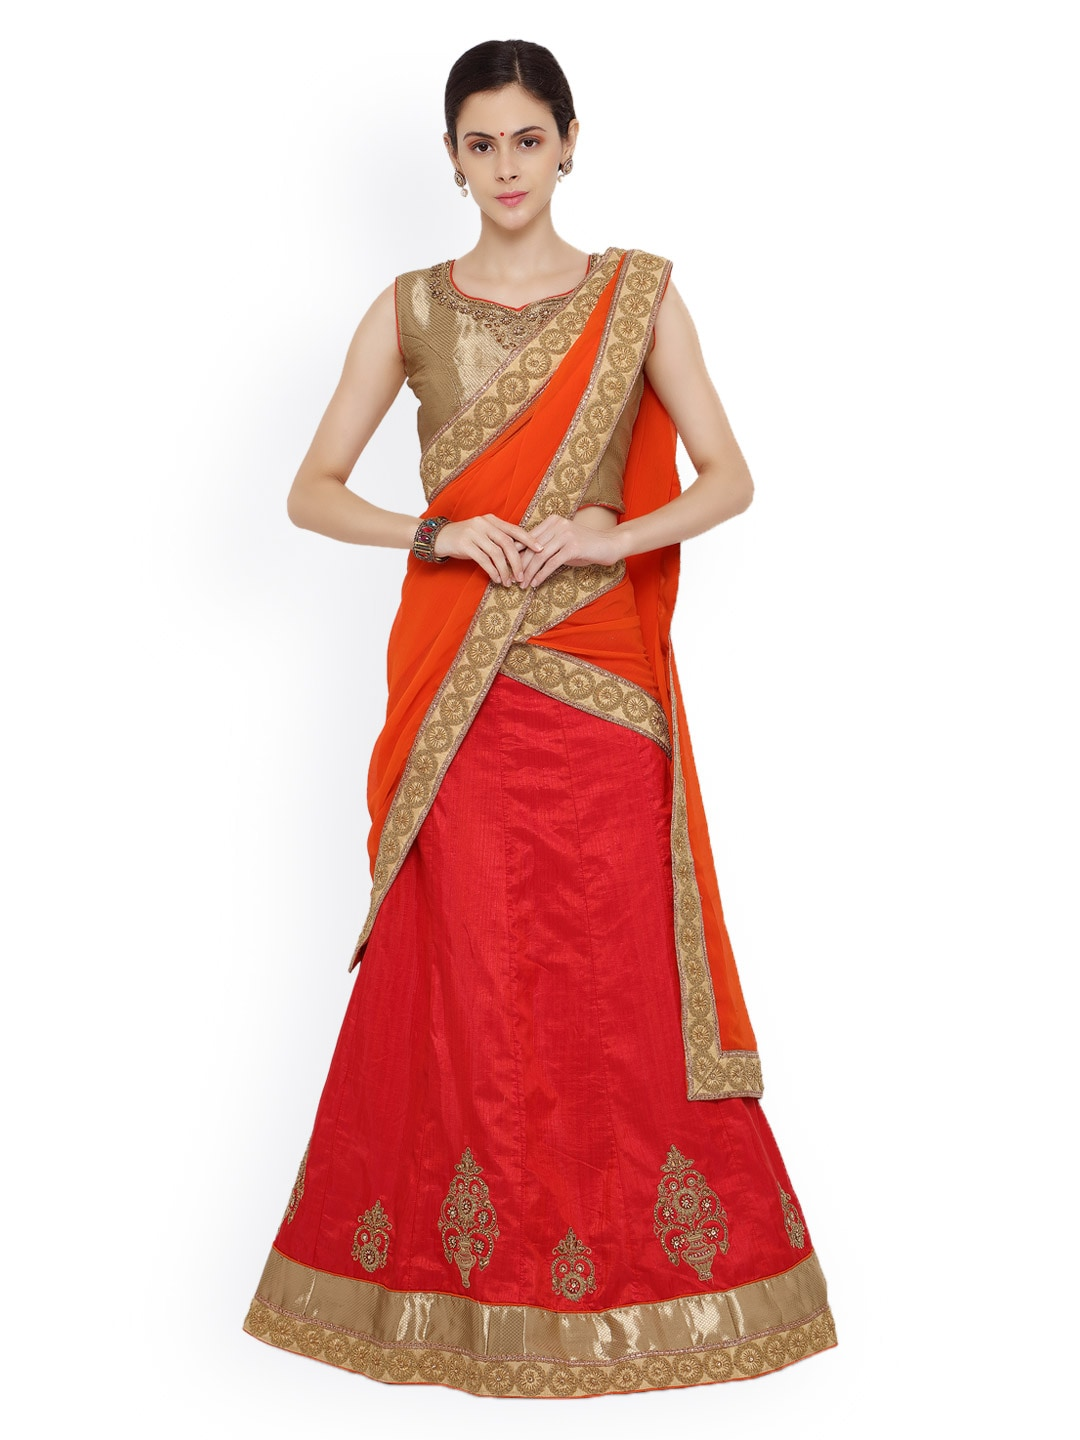 RIYA Red & Orange Silk Embroidered Lehenga Choli with Dupatta image